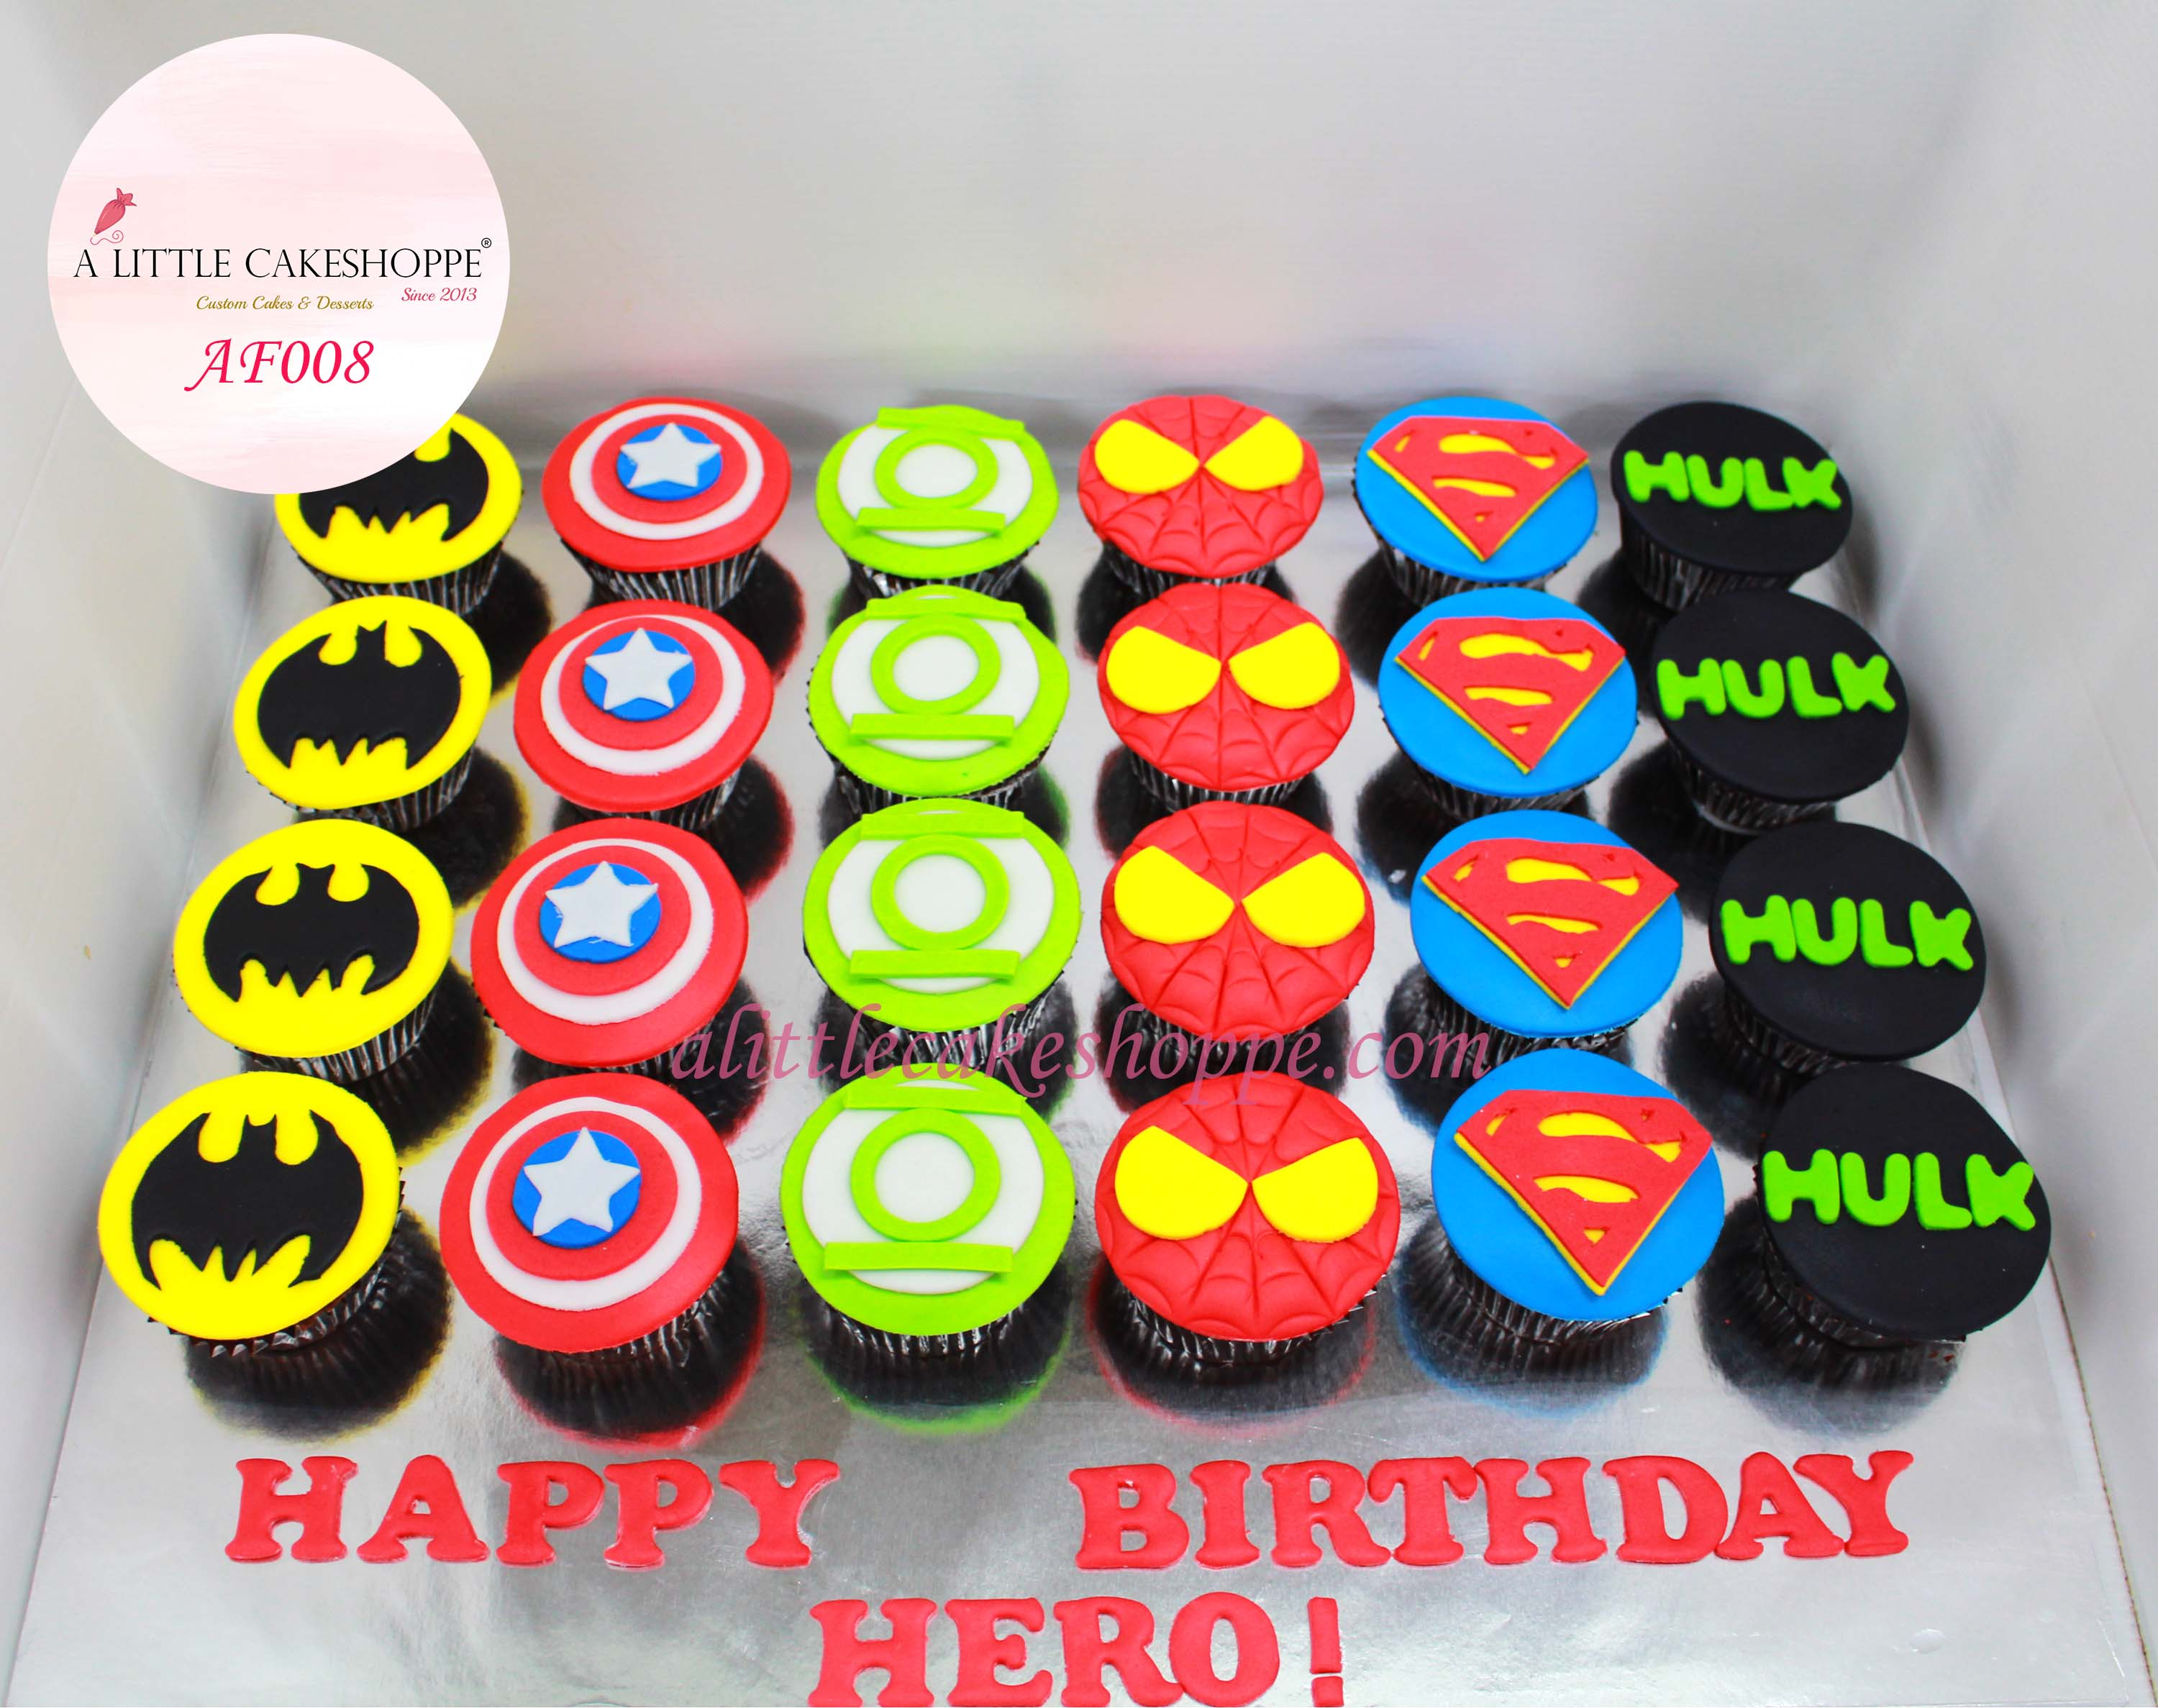 Best Customised Cake Shop Singapore custom cake 2D 3D birthday cake cupcakes desserts wedding corporate events anniversary 1st birthday 21st birthday fondant fresh cream buttercream cakes alittlecakeshoppe a little cake shoppe compliments review singapore bakers SG cake shop cakeshop ah beng who bakes superhero